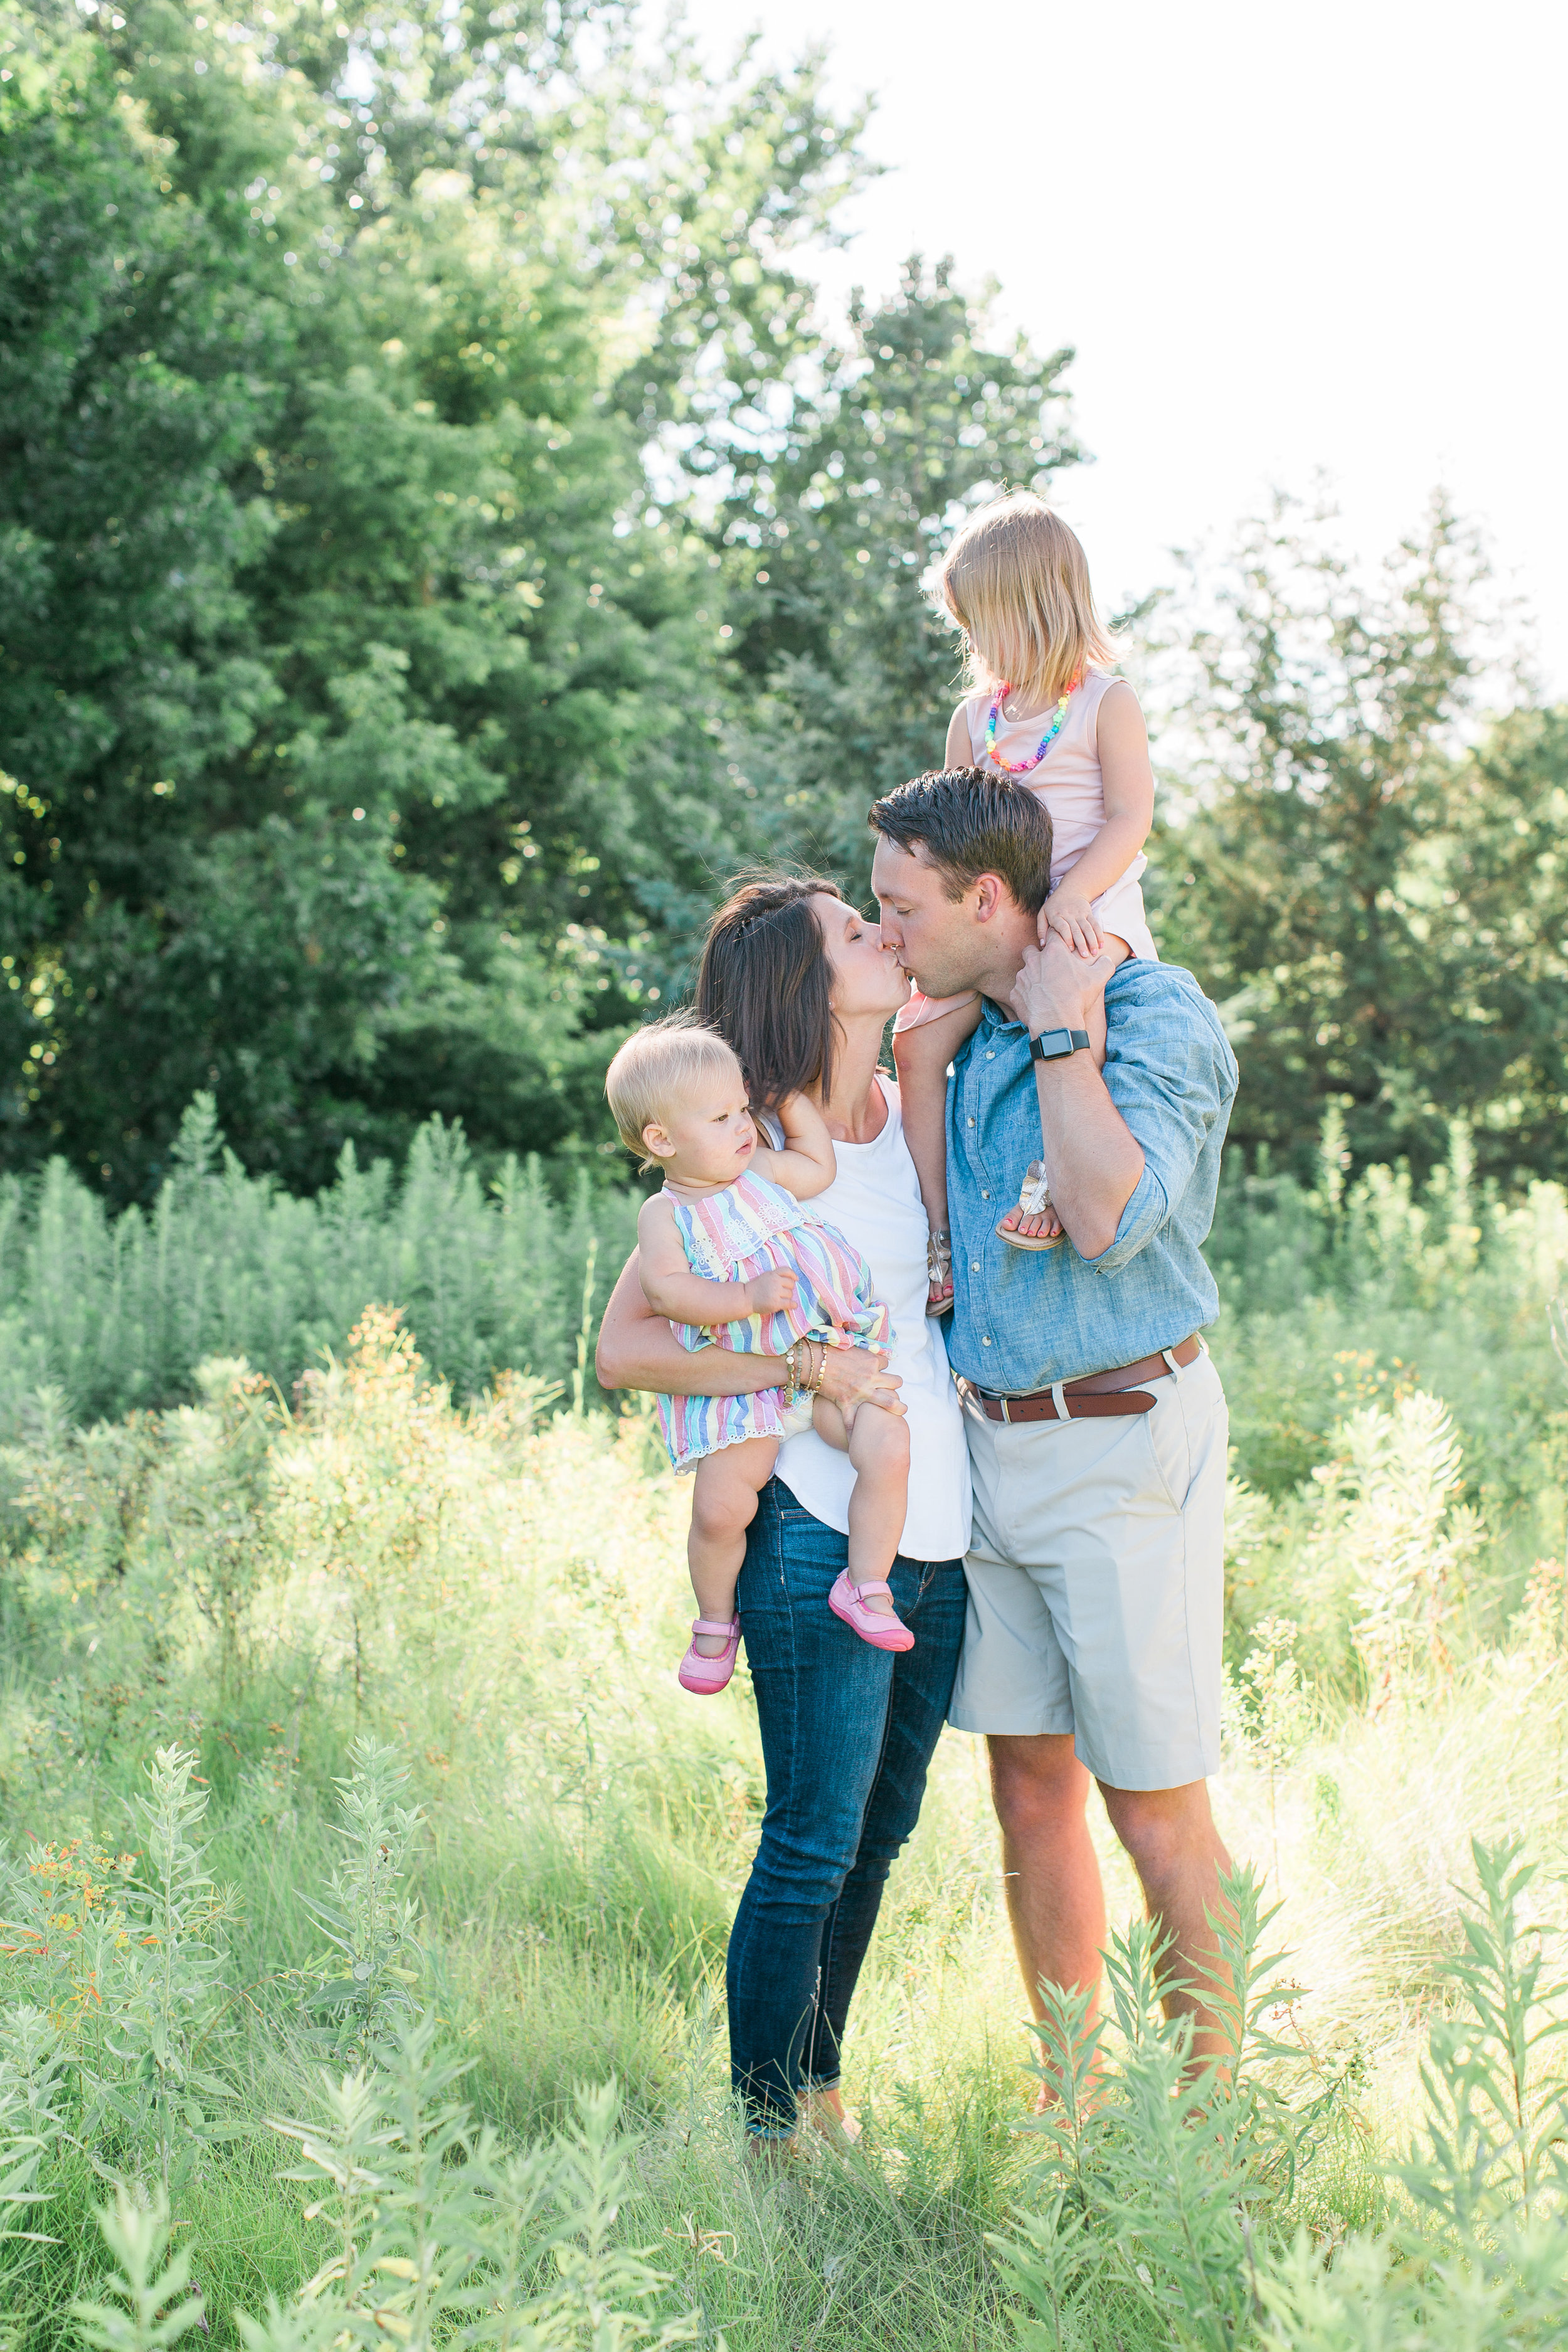 Family with husband, wife, toddler and baby in family portrait mom and dad kissing Minnesota family photographer Mallory Kiesow Photography